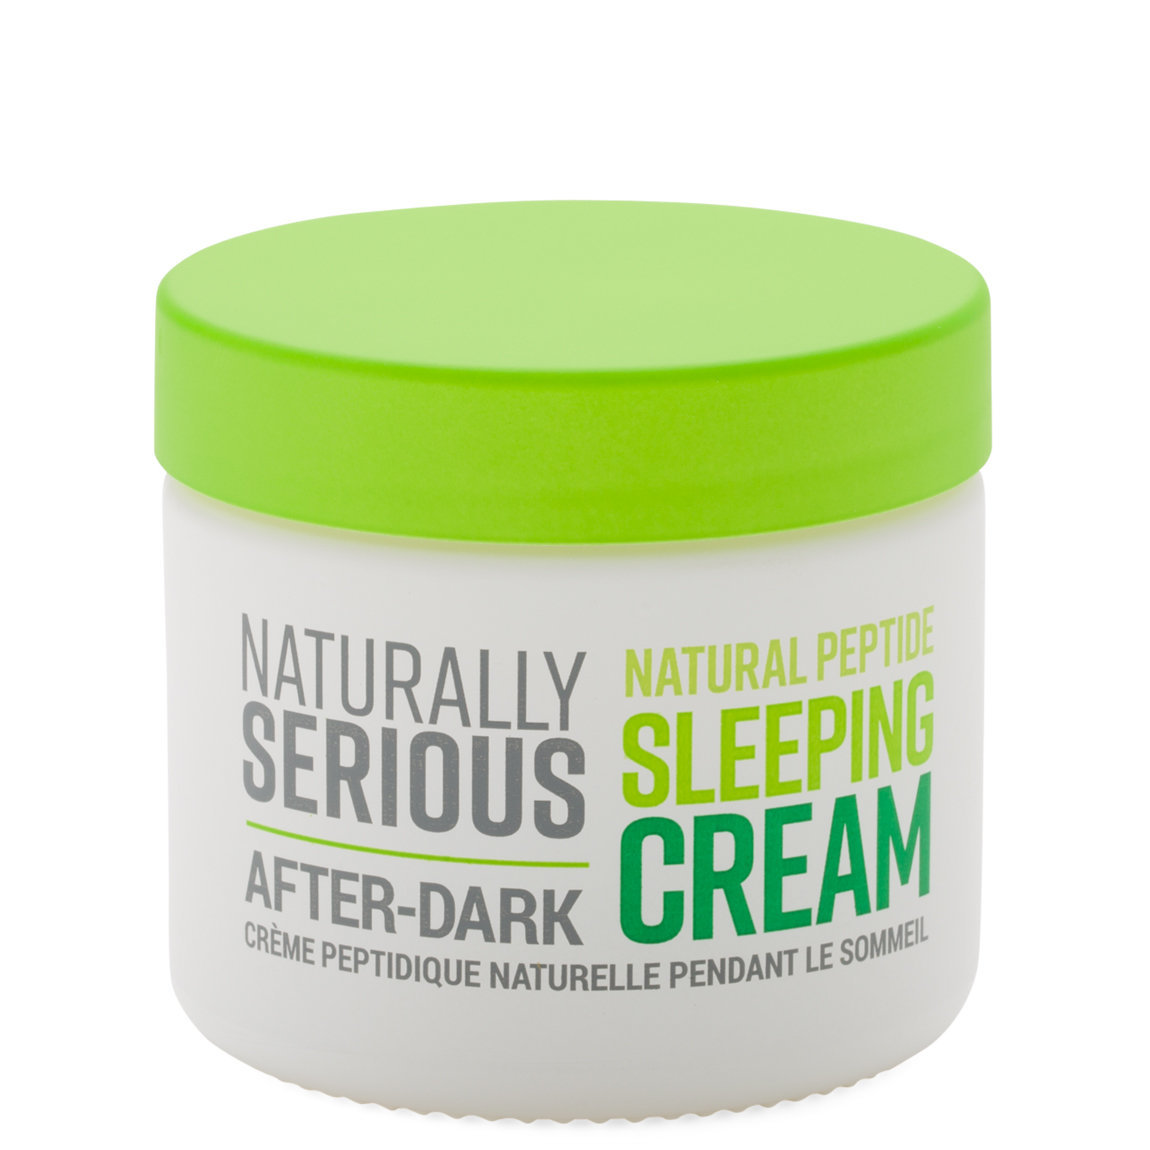 Naturally Serious After-Dark Natural Peptide Sleeping Cream alternative view 1 - product swatch.